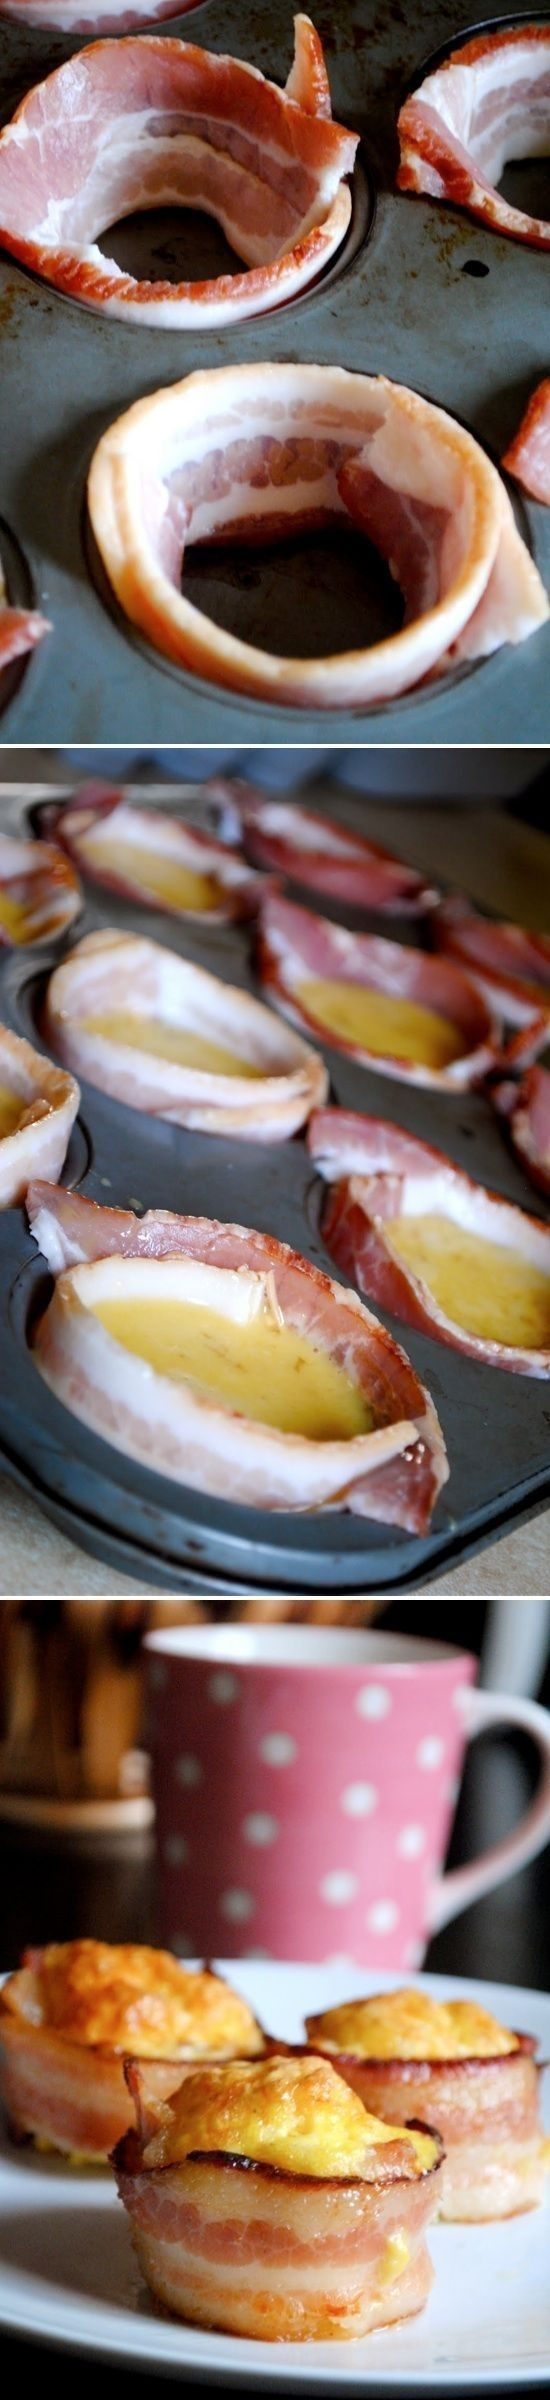 Cup bacon and eggs together for convenient breakfast bites. so that's how its done